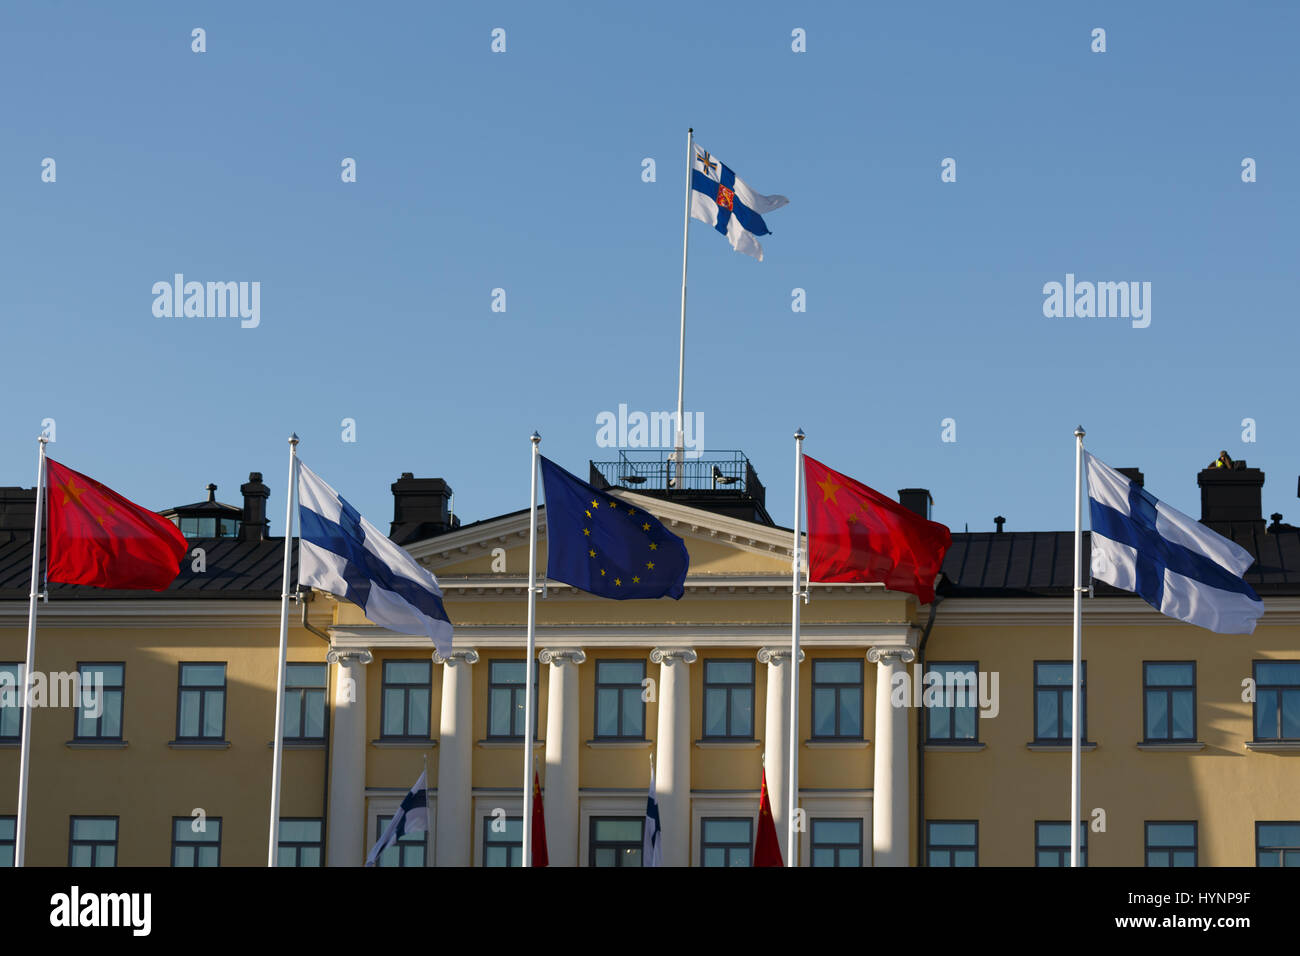 Helsinki, Finland. 5th April, 2017. Flags of China, Finland and the EU decorate the Presidential Palace in Helsinki Stock Photo